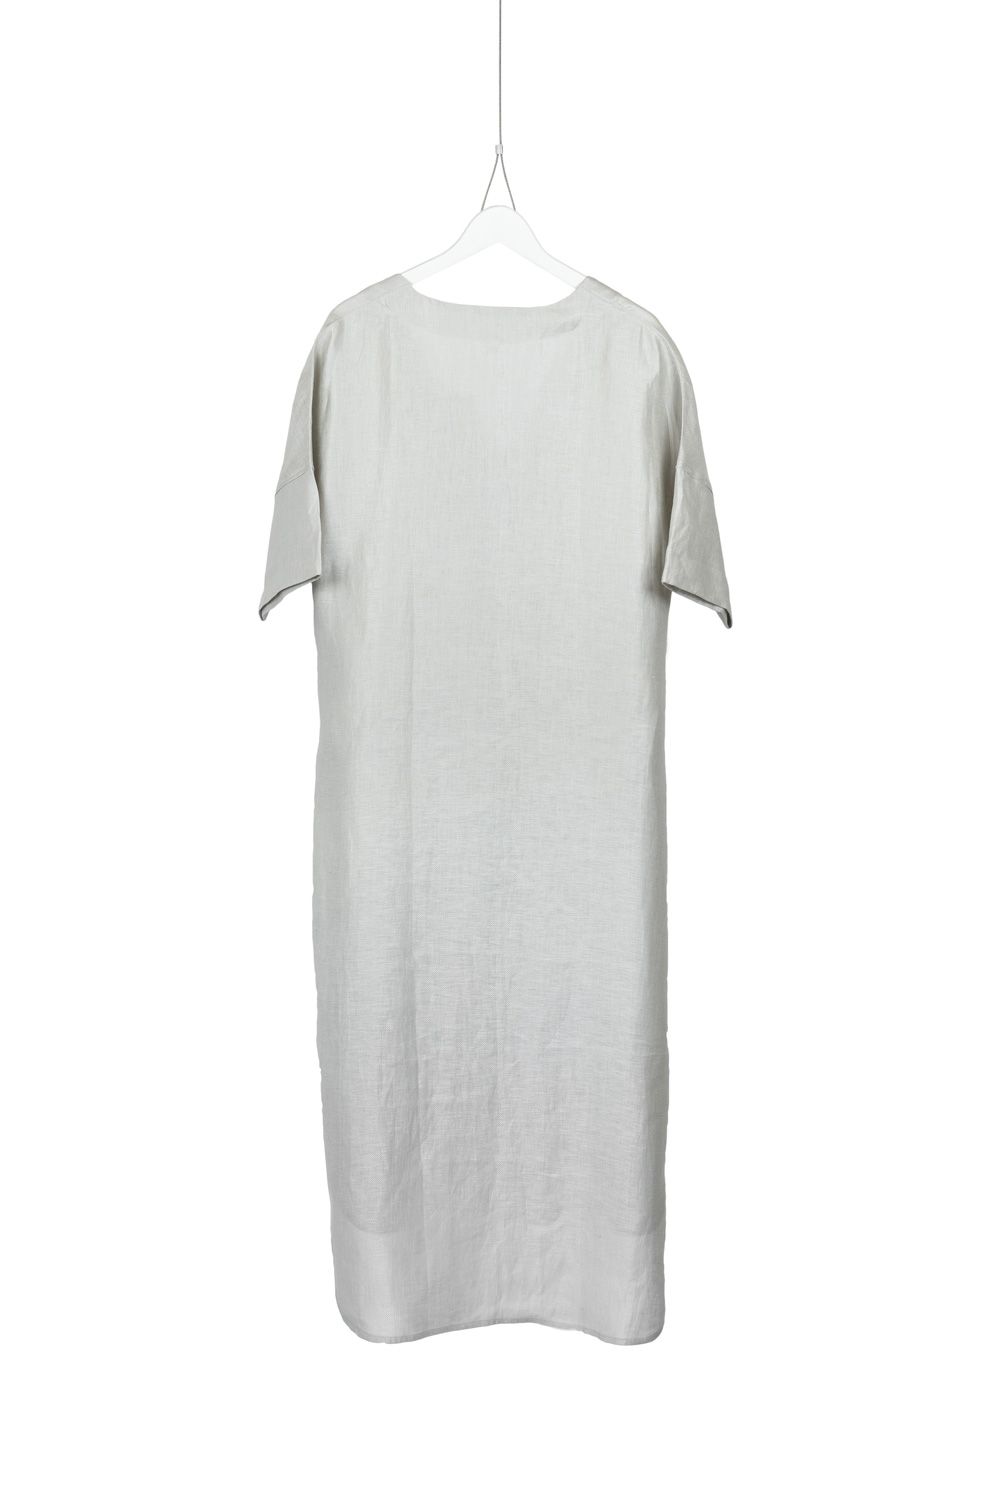 Dress Lana, Natural Linen